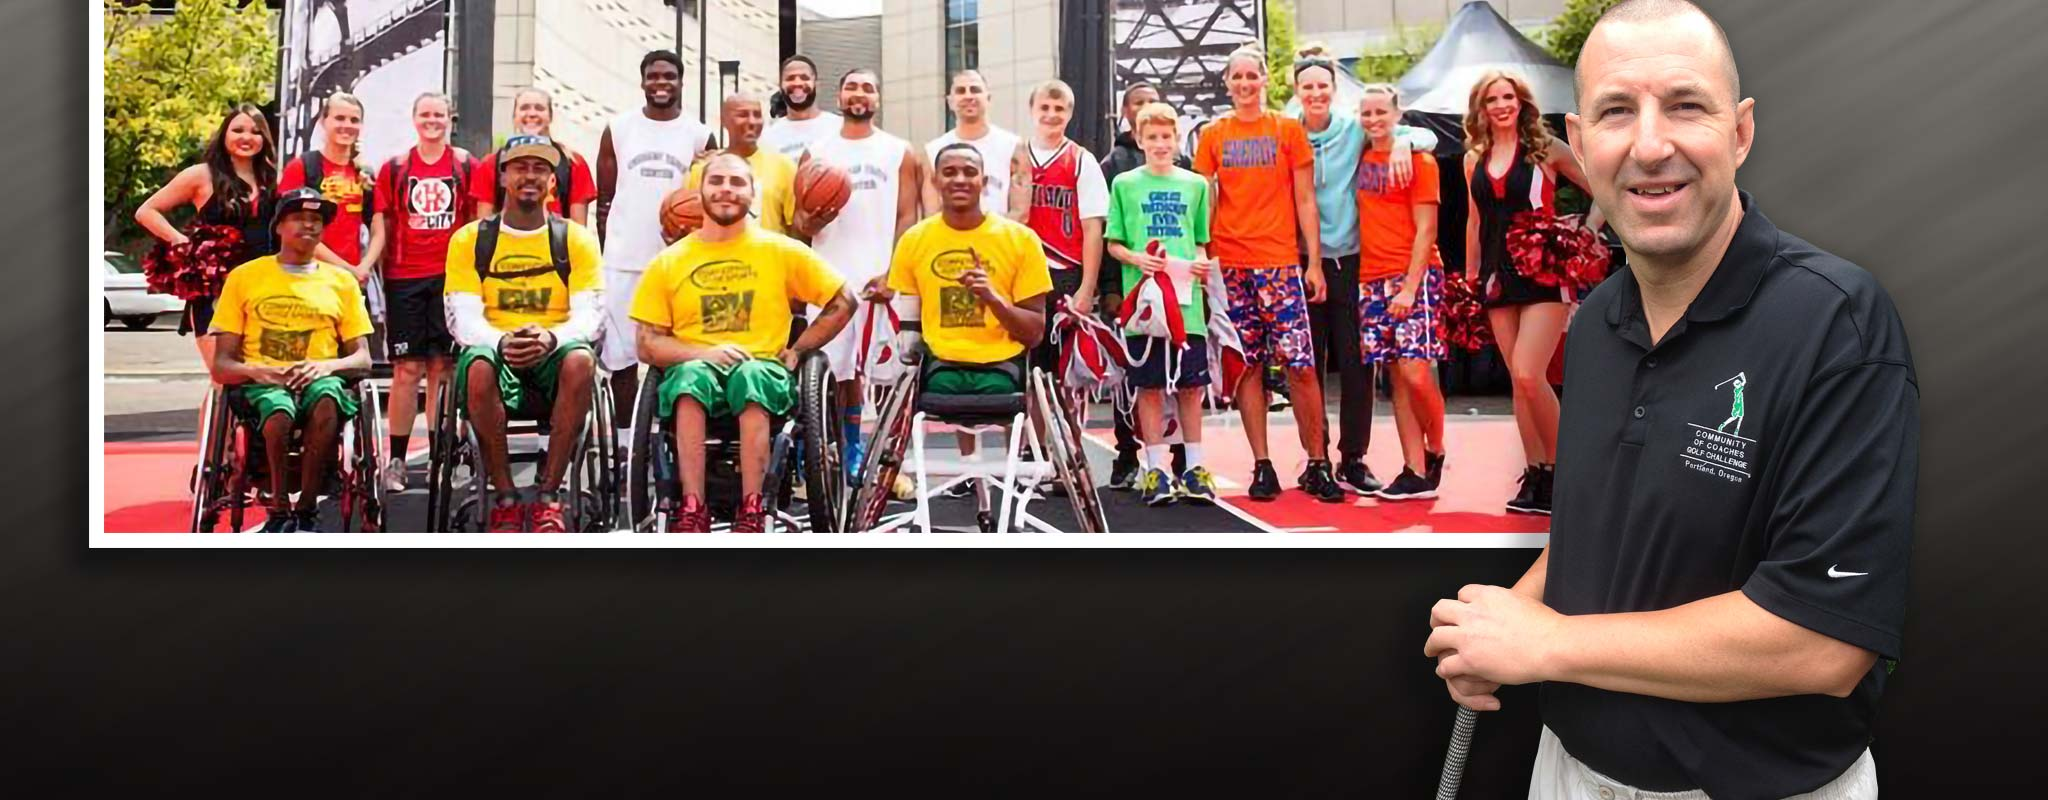 Mark Eberhard and Special Olympics competitors lined up for a photo.